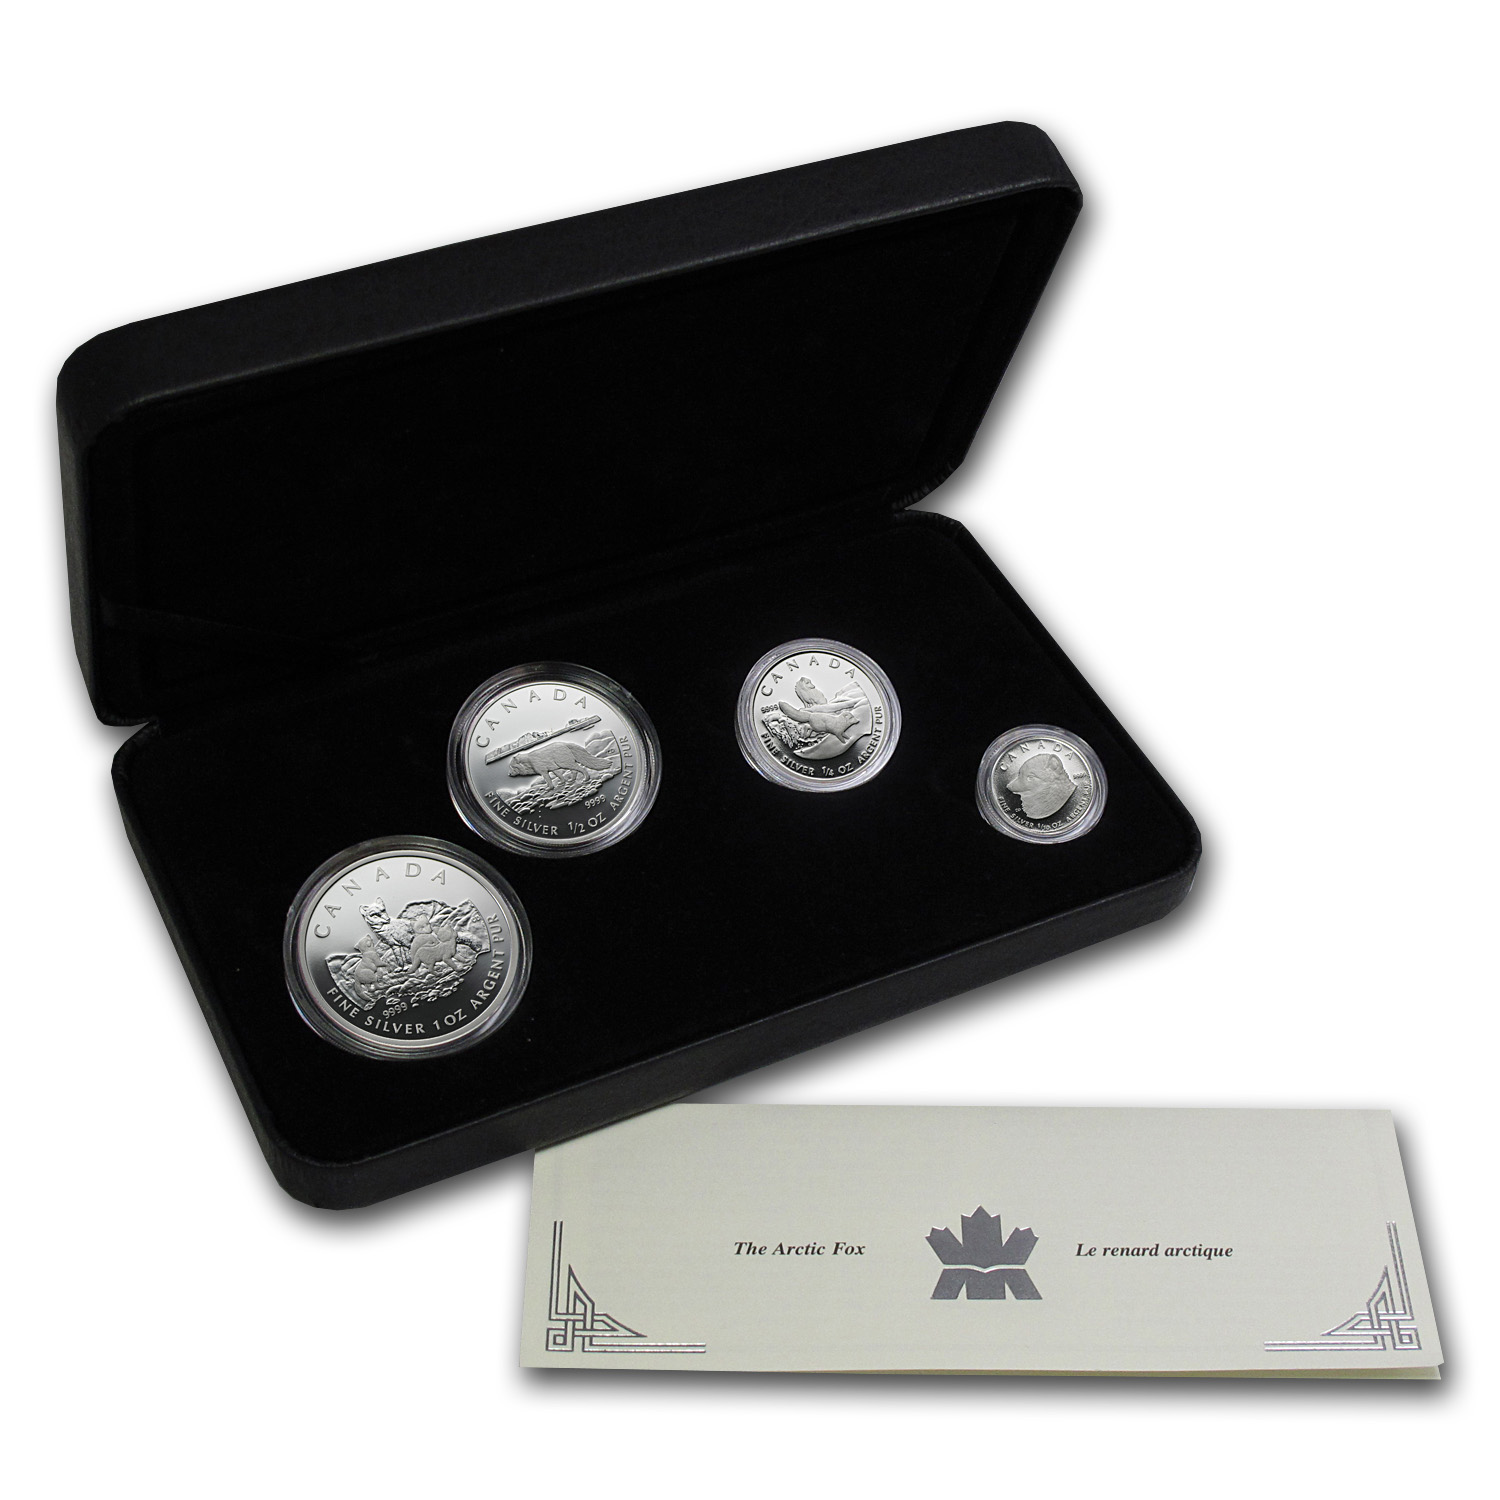 2004 Canada 4-Coin Silver Arctic Fox Proof Set (w/Box & COA)